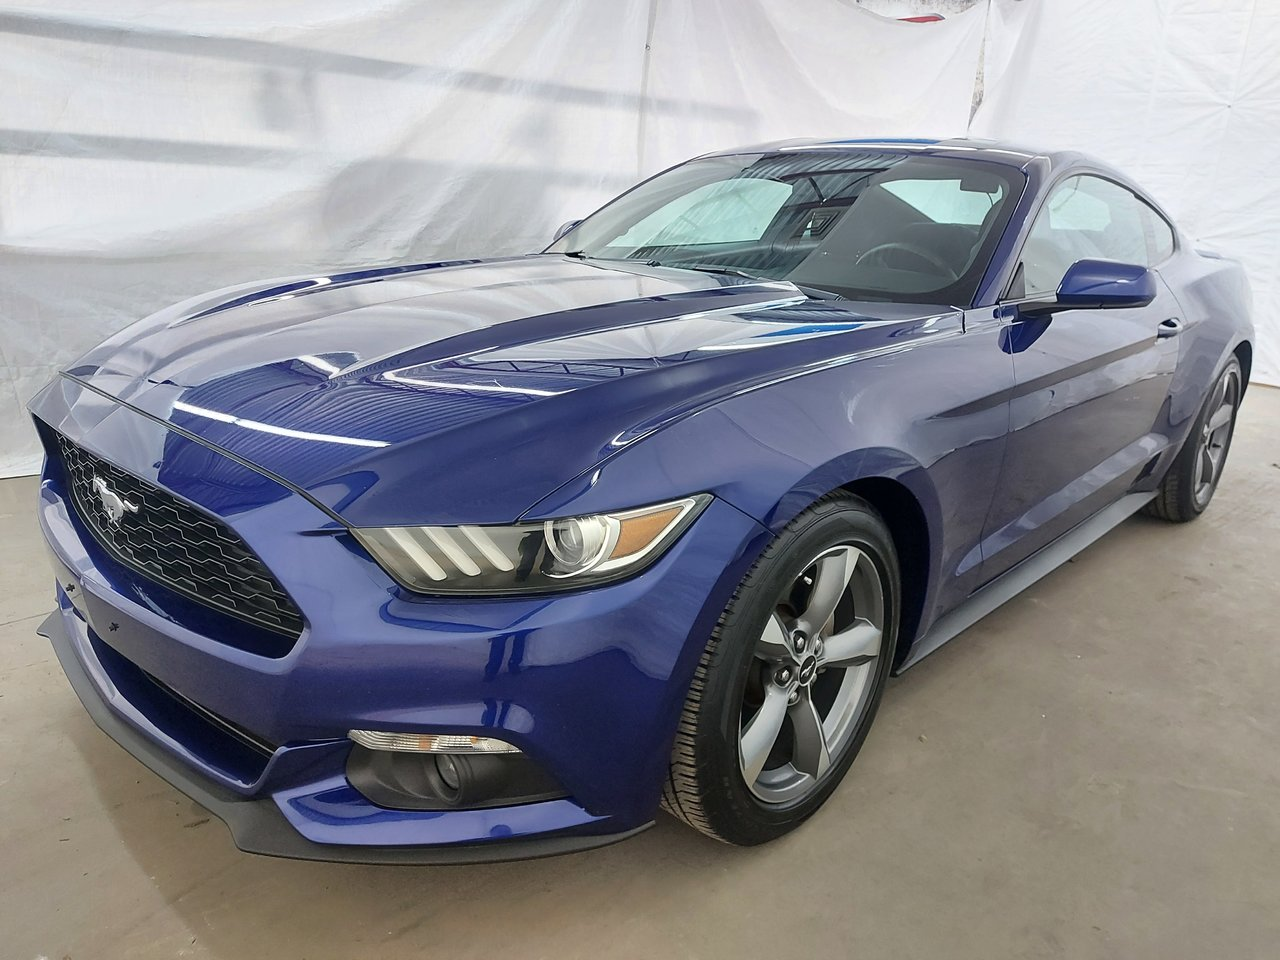 Ford Mustang 2016 V6 COUPE RWD MAGS CAMÉRA GR. ÉLECT. BLUETOOTH